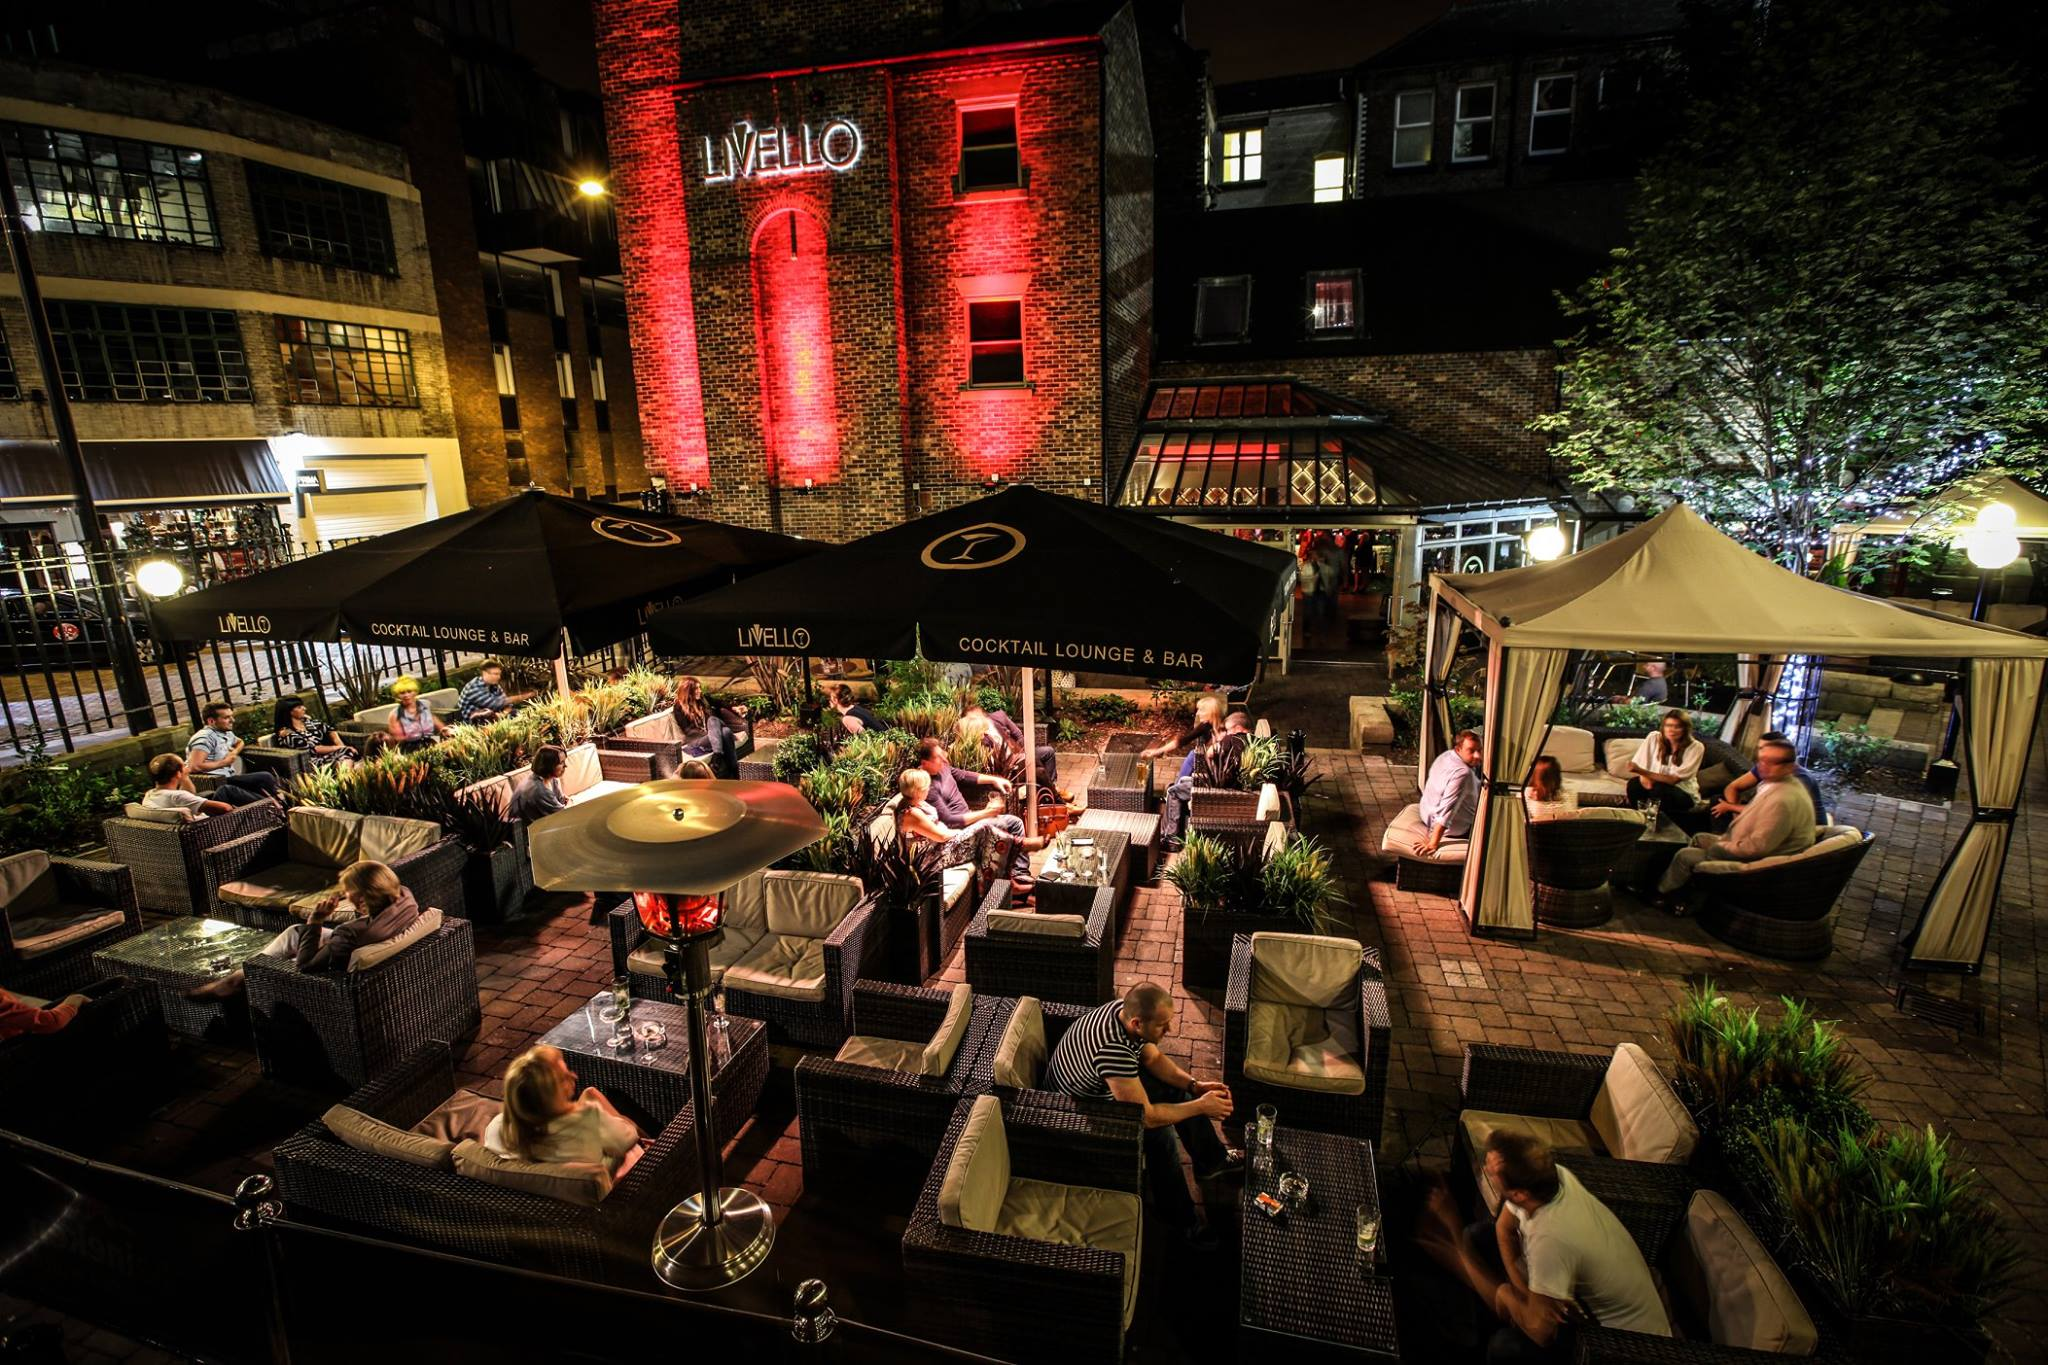 The beer garden and terrace area in Livello, where celebrities spend nights out in Newcastle